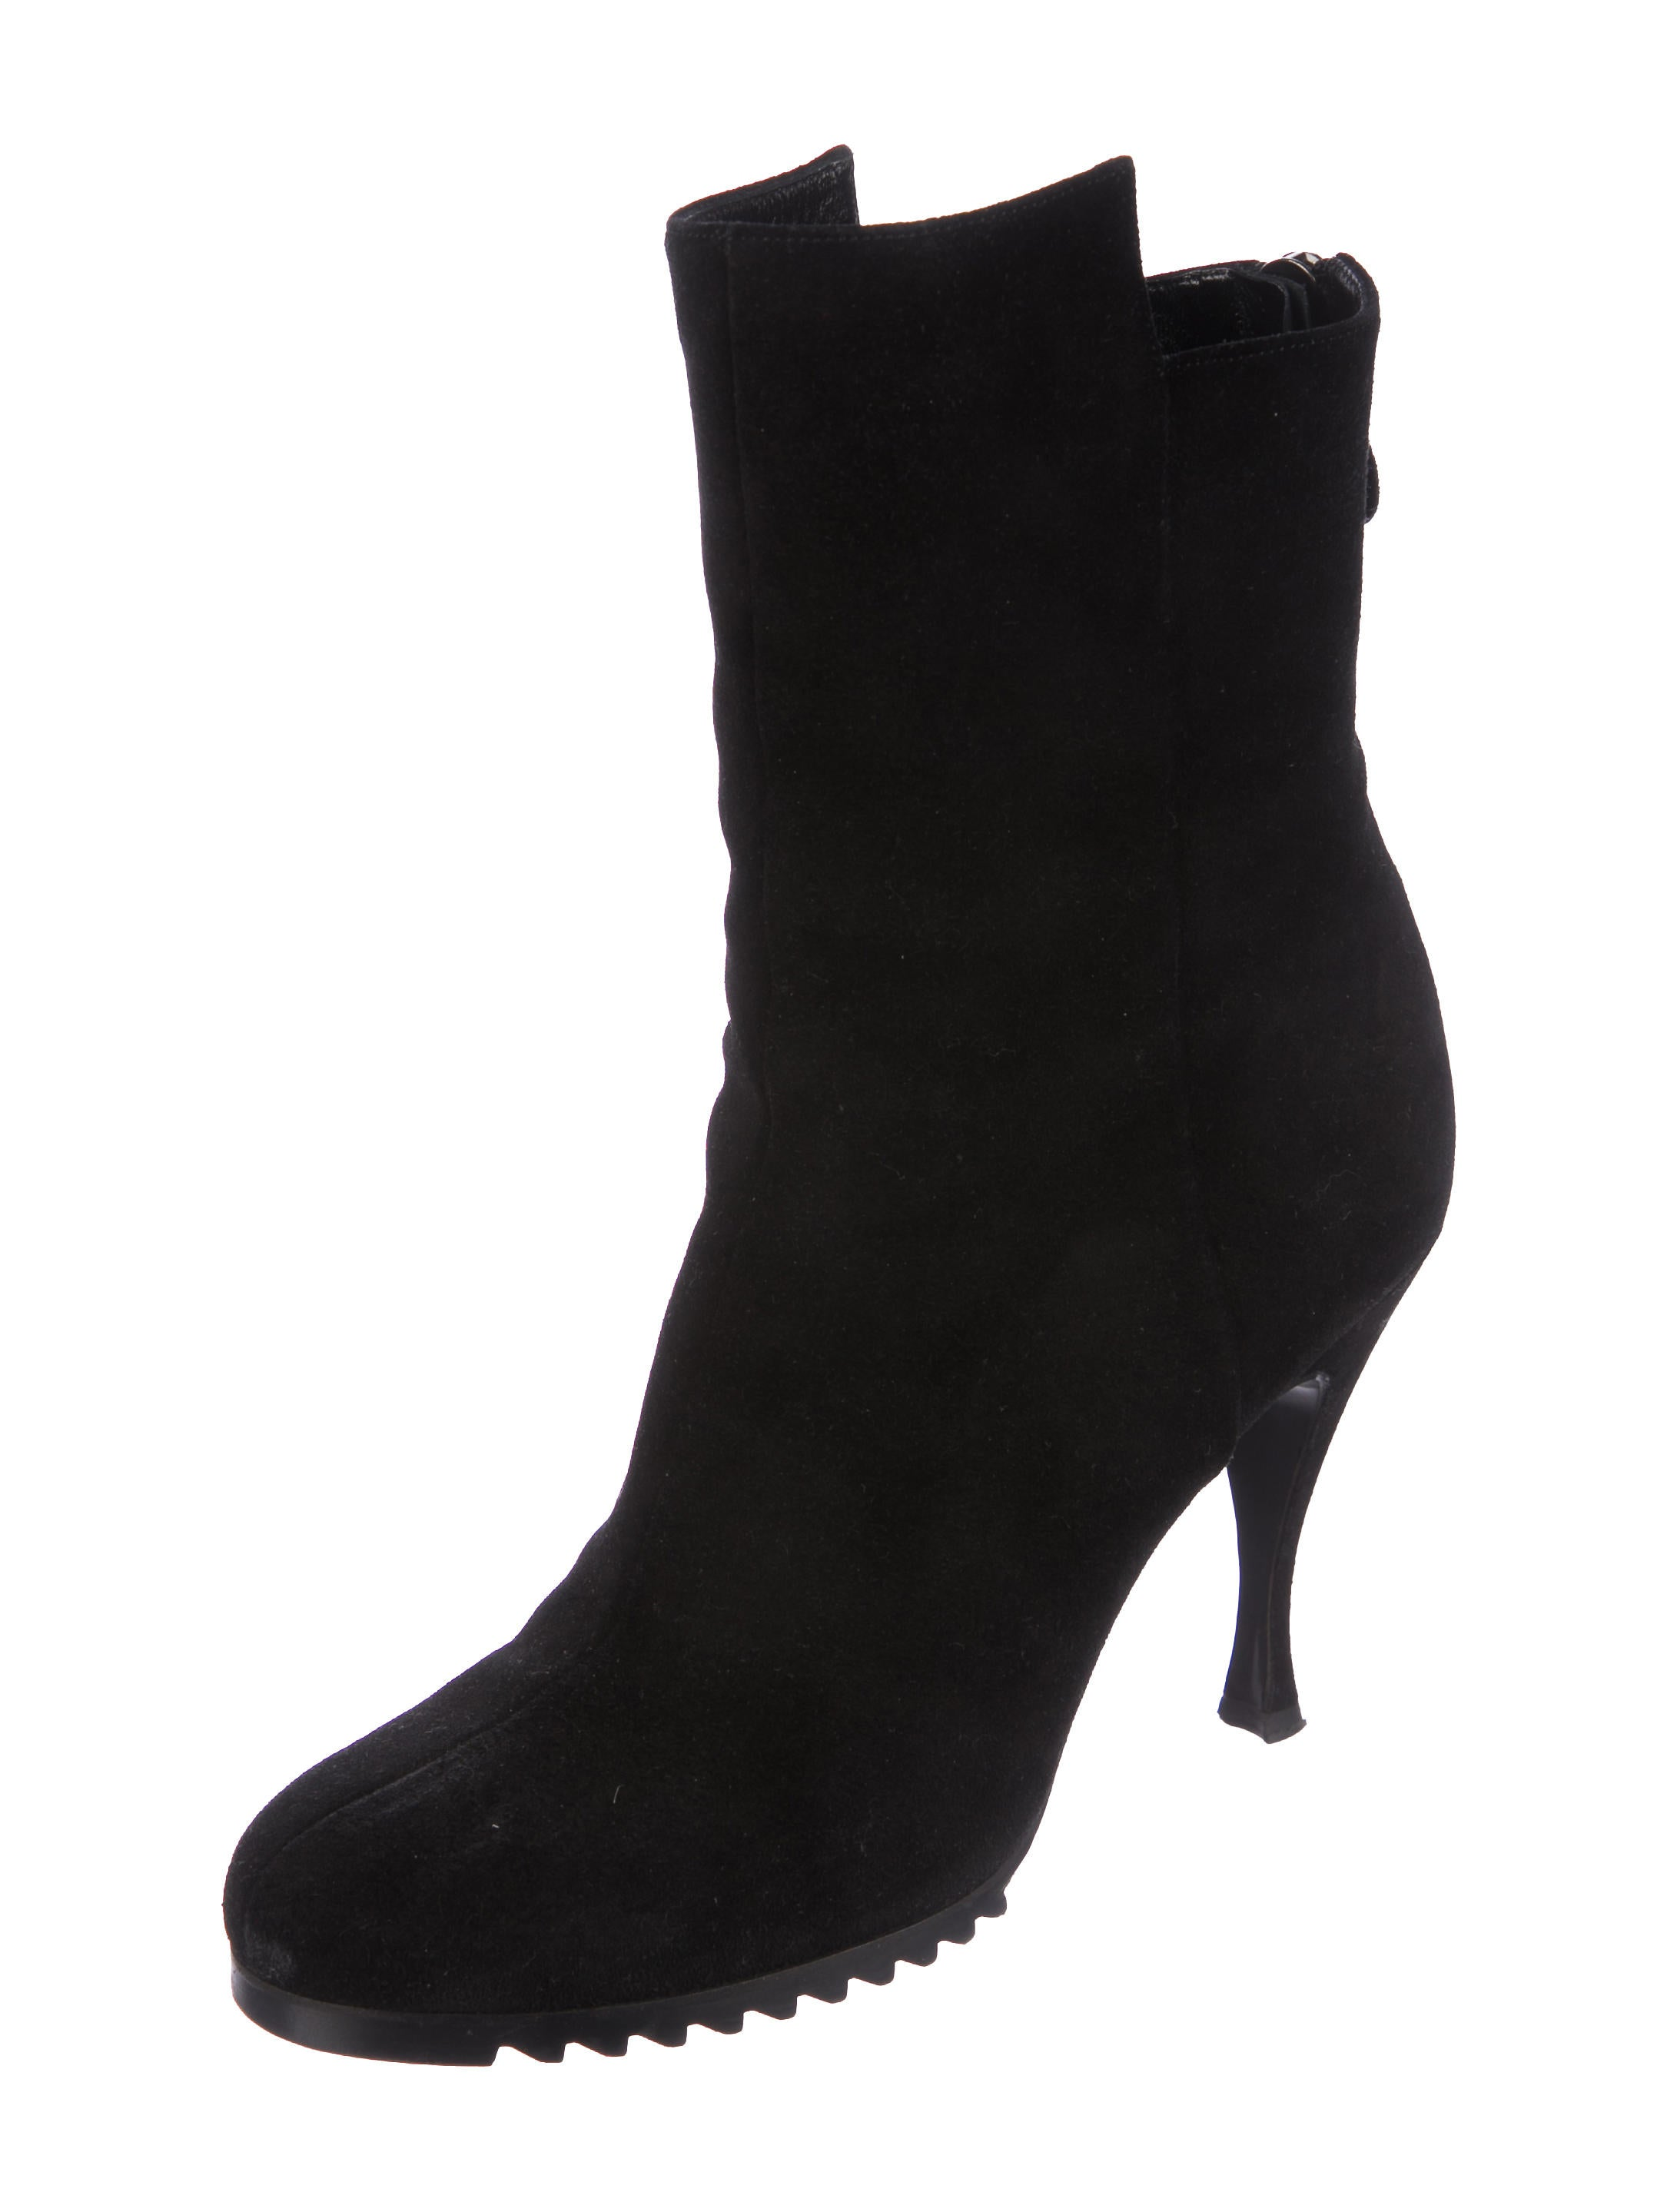 Balenciaga Round-Toe Ankle Boots under 50 dollars sale fast delivery 2014 unisex Manchester for sale vUj3idIhij